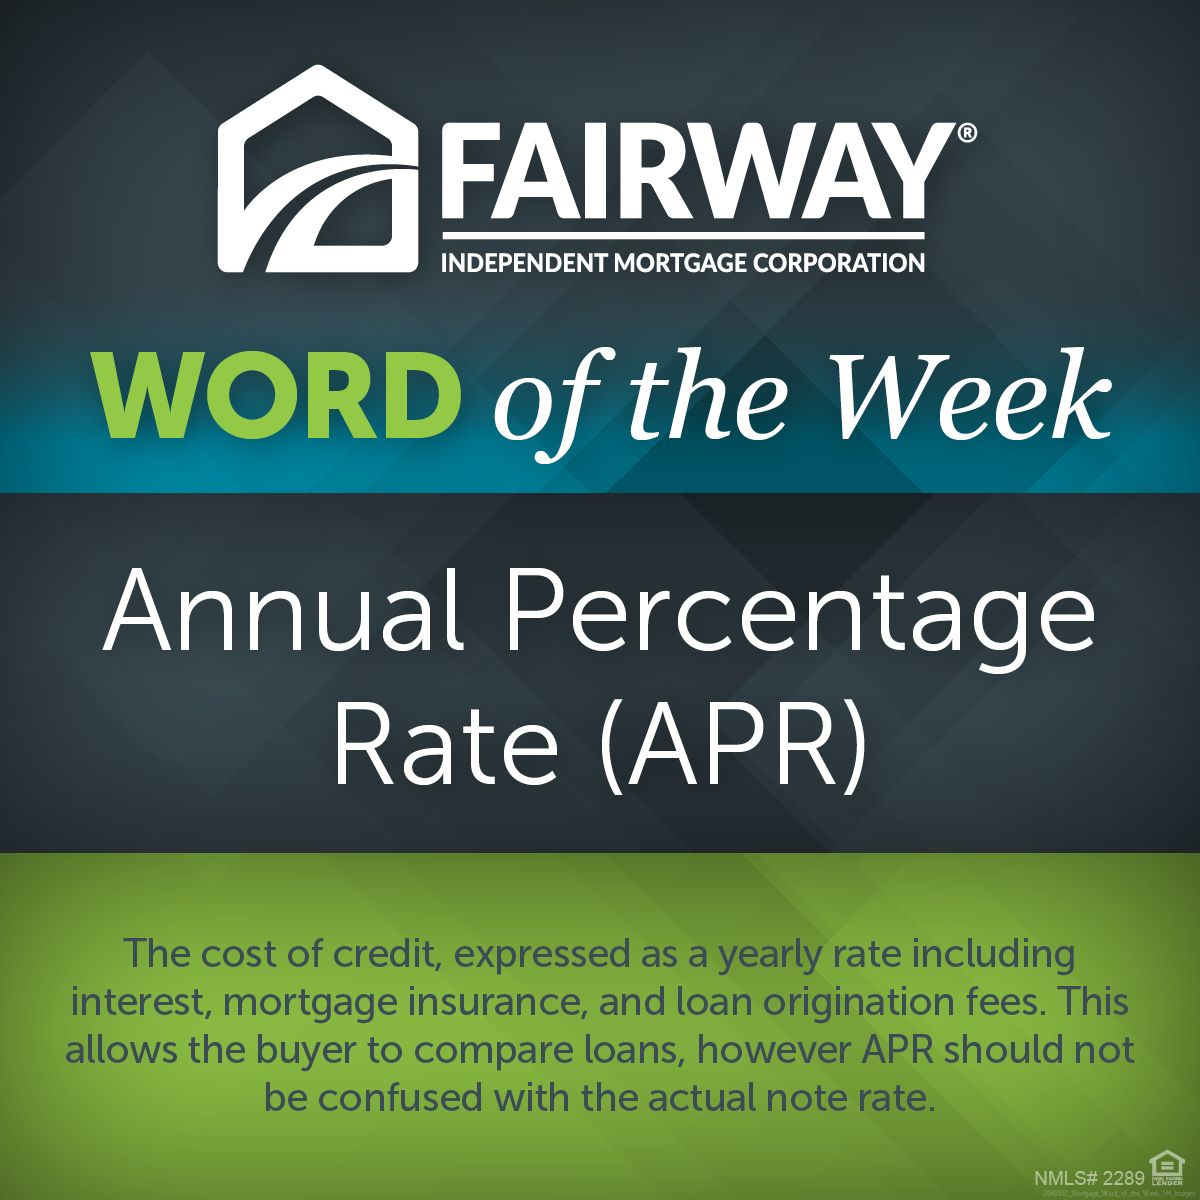 Annual Percentage Rate or APR Fairway Mortgage for Home